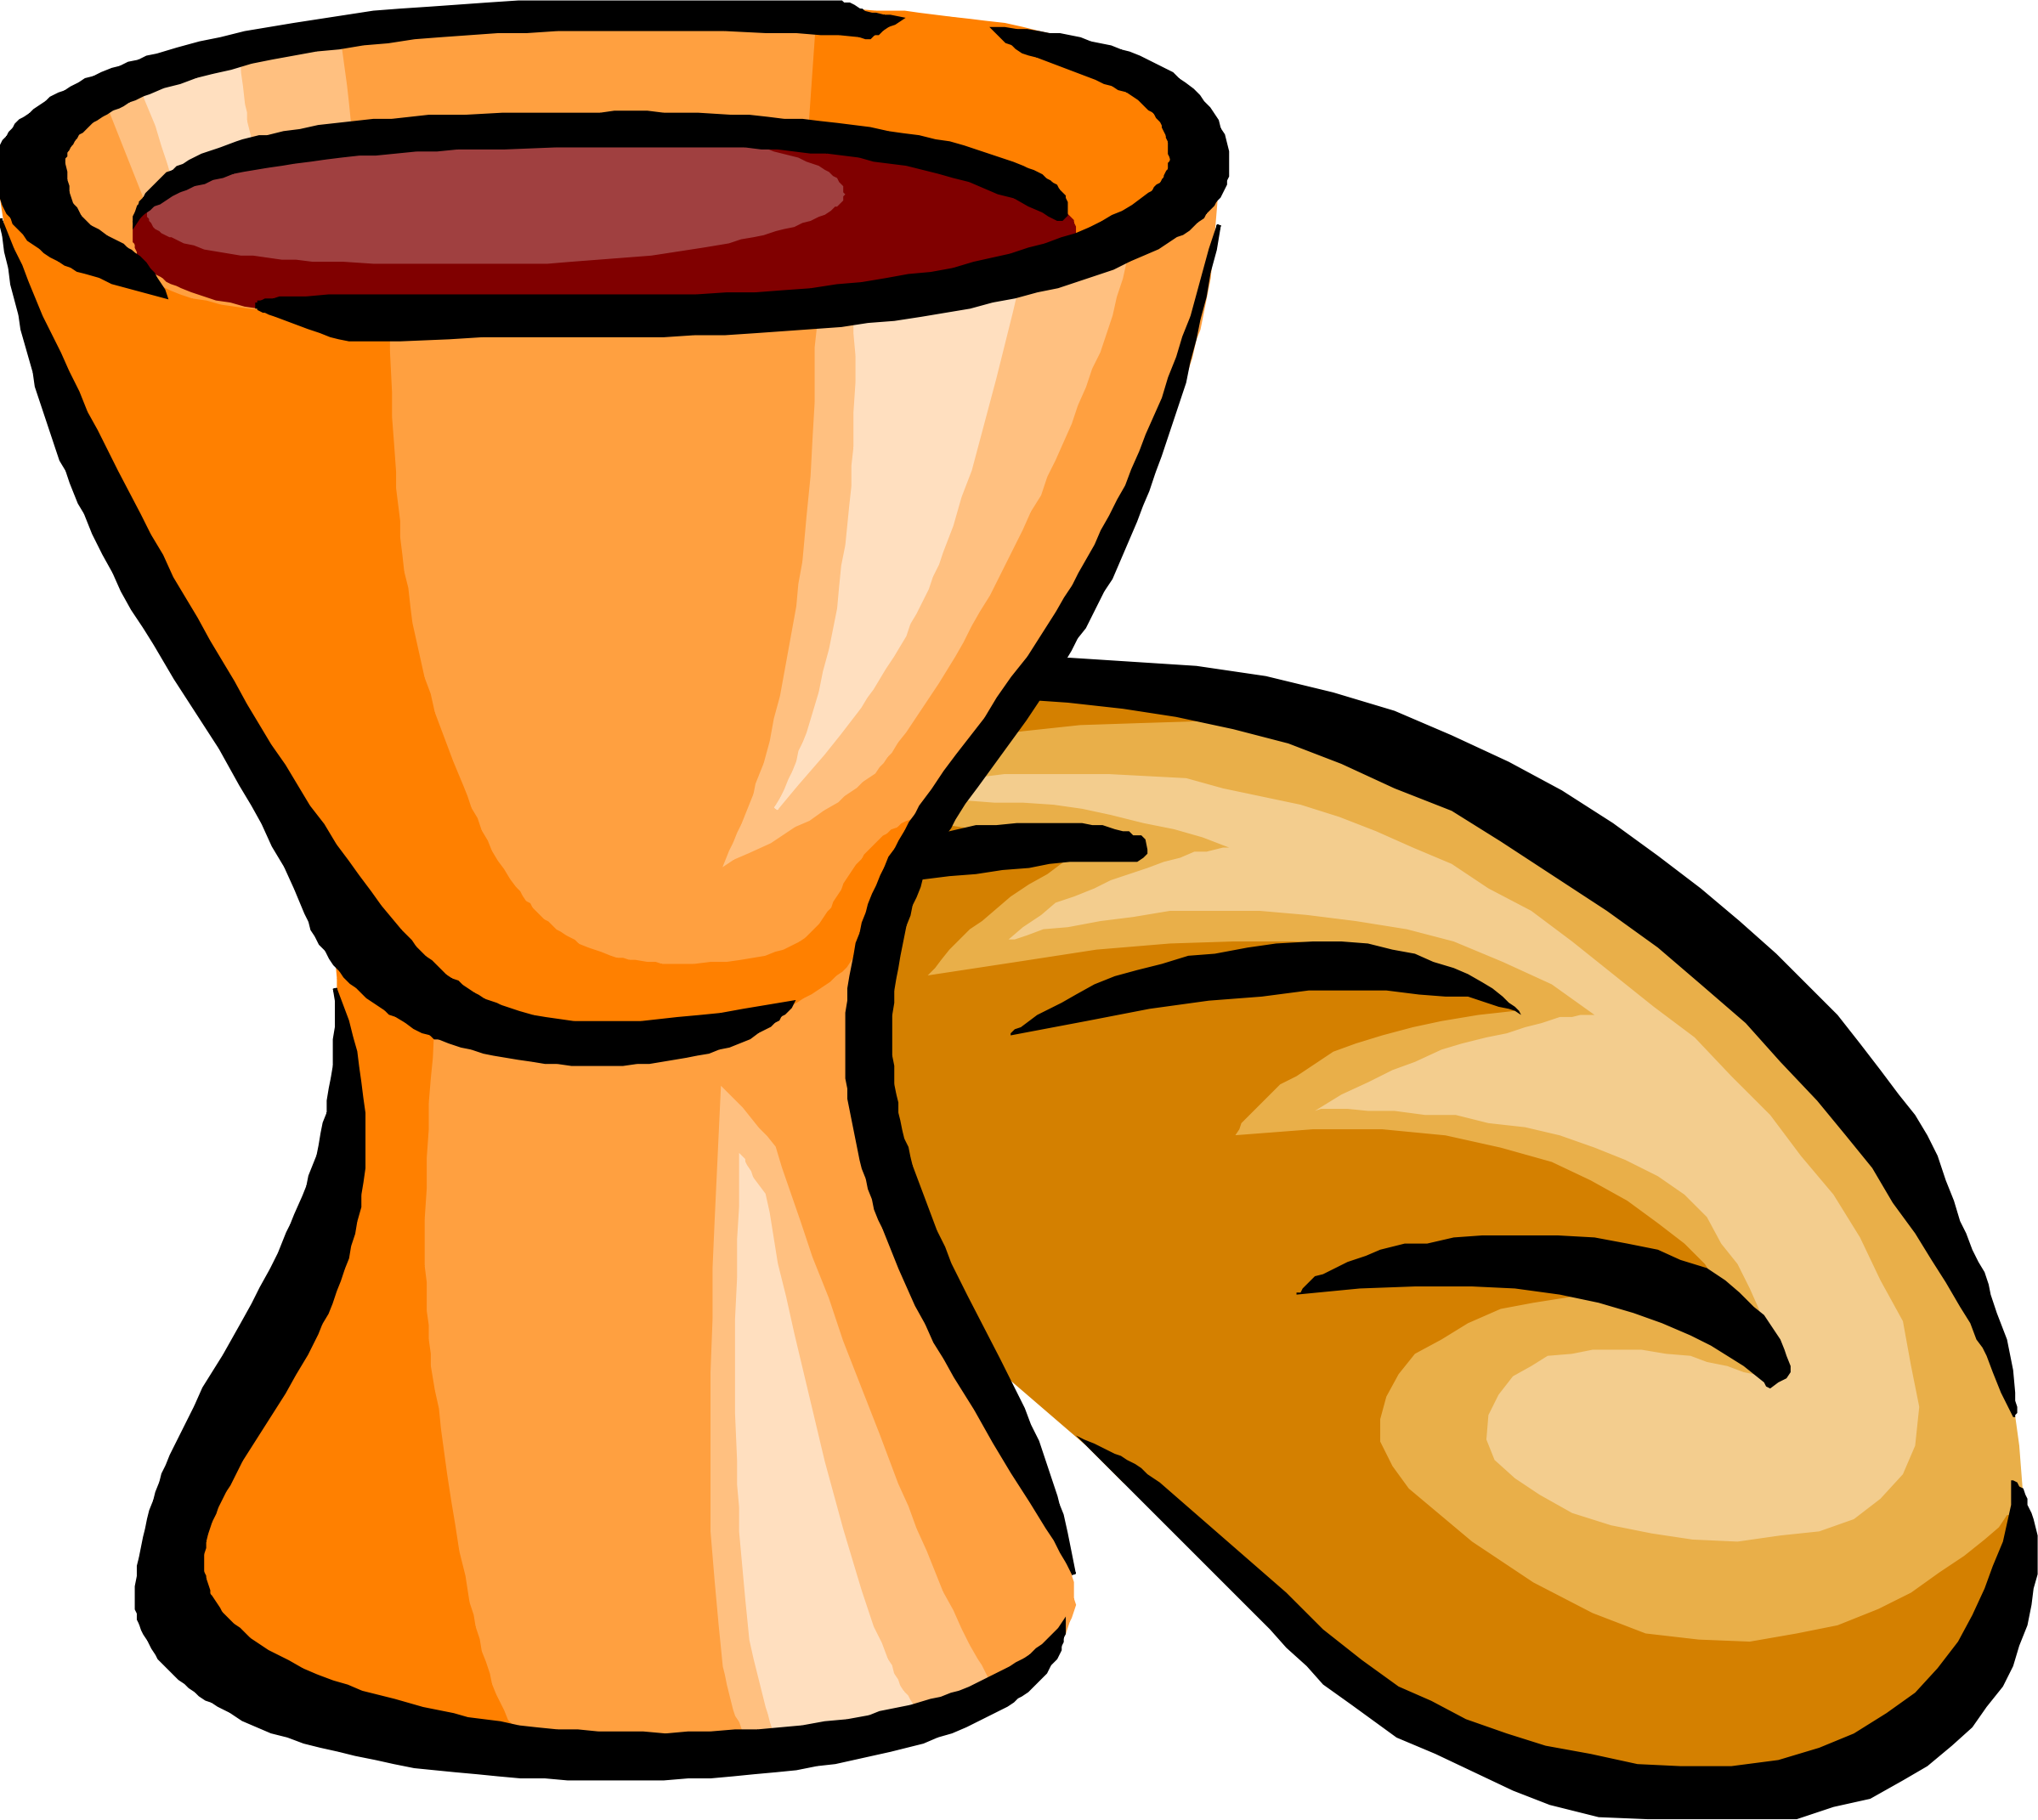 Clip art communion clipart images gallery for free download.